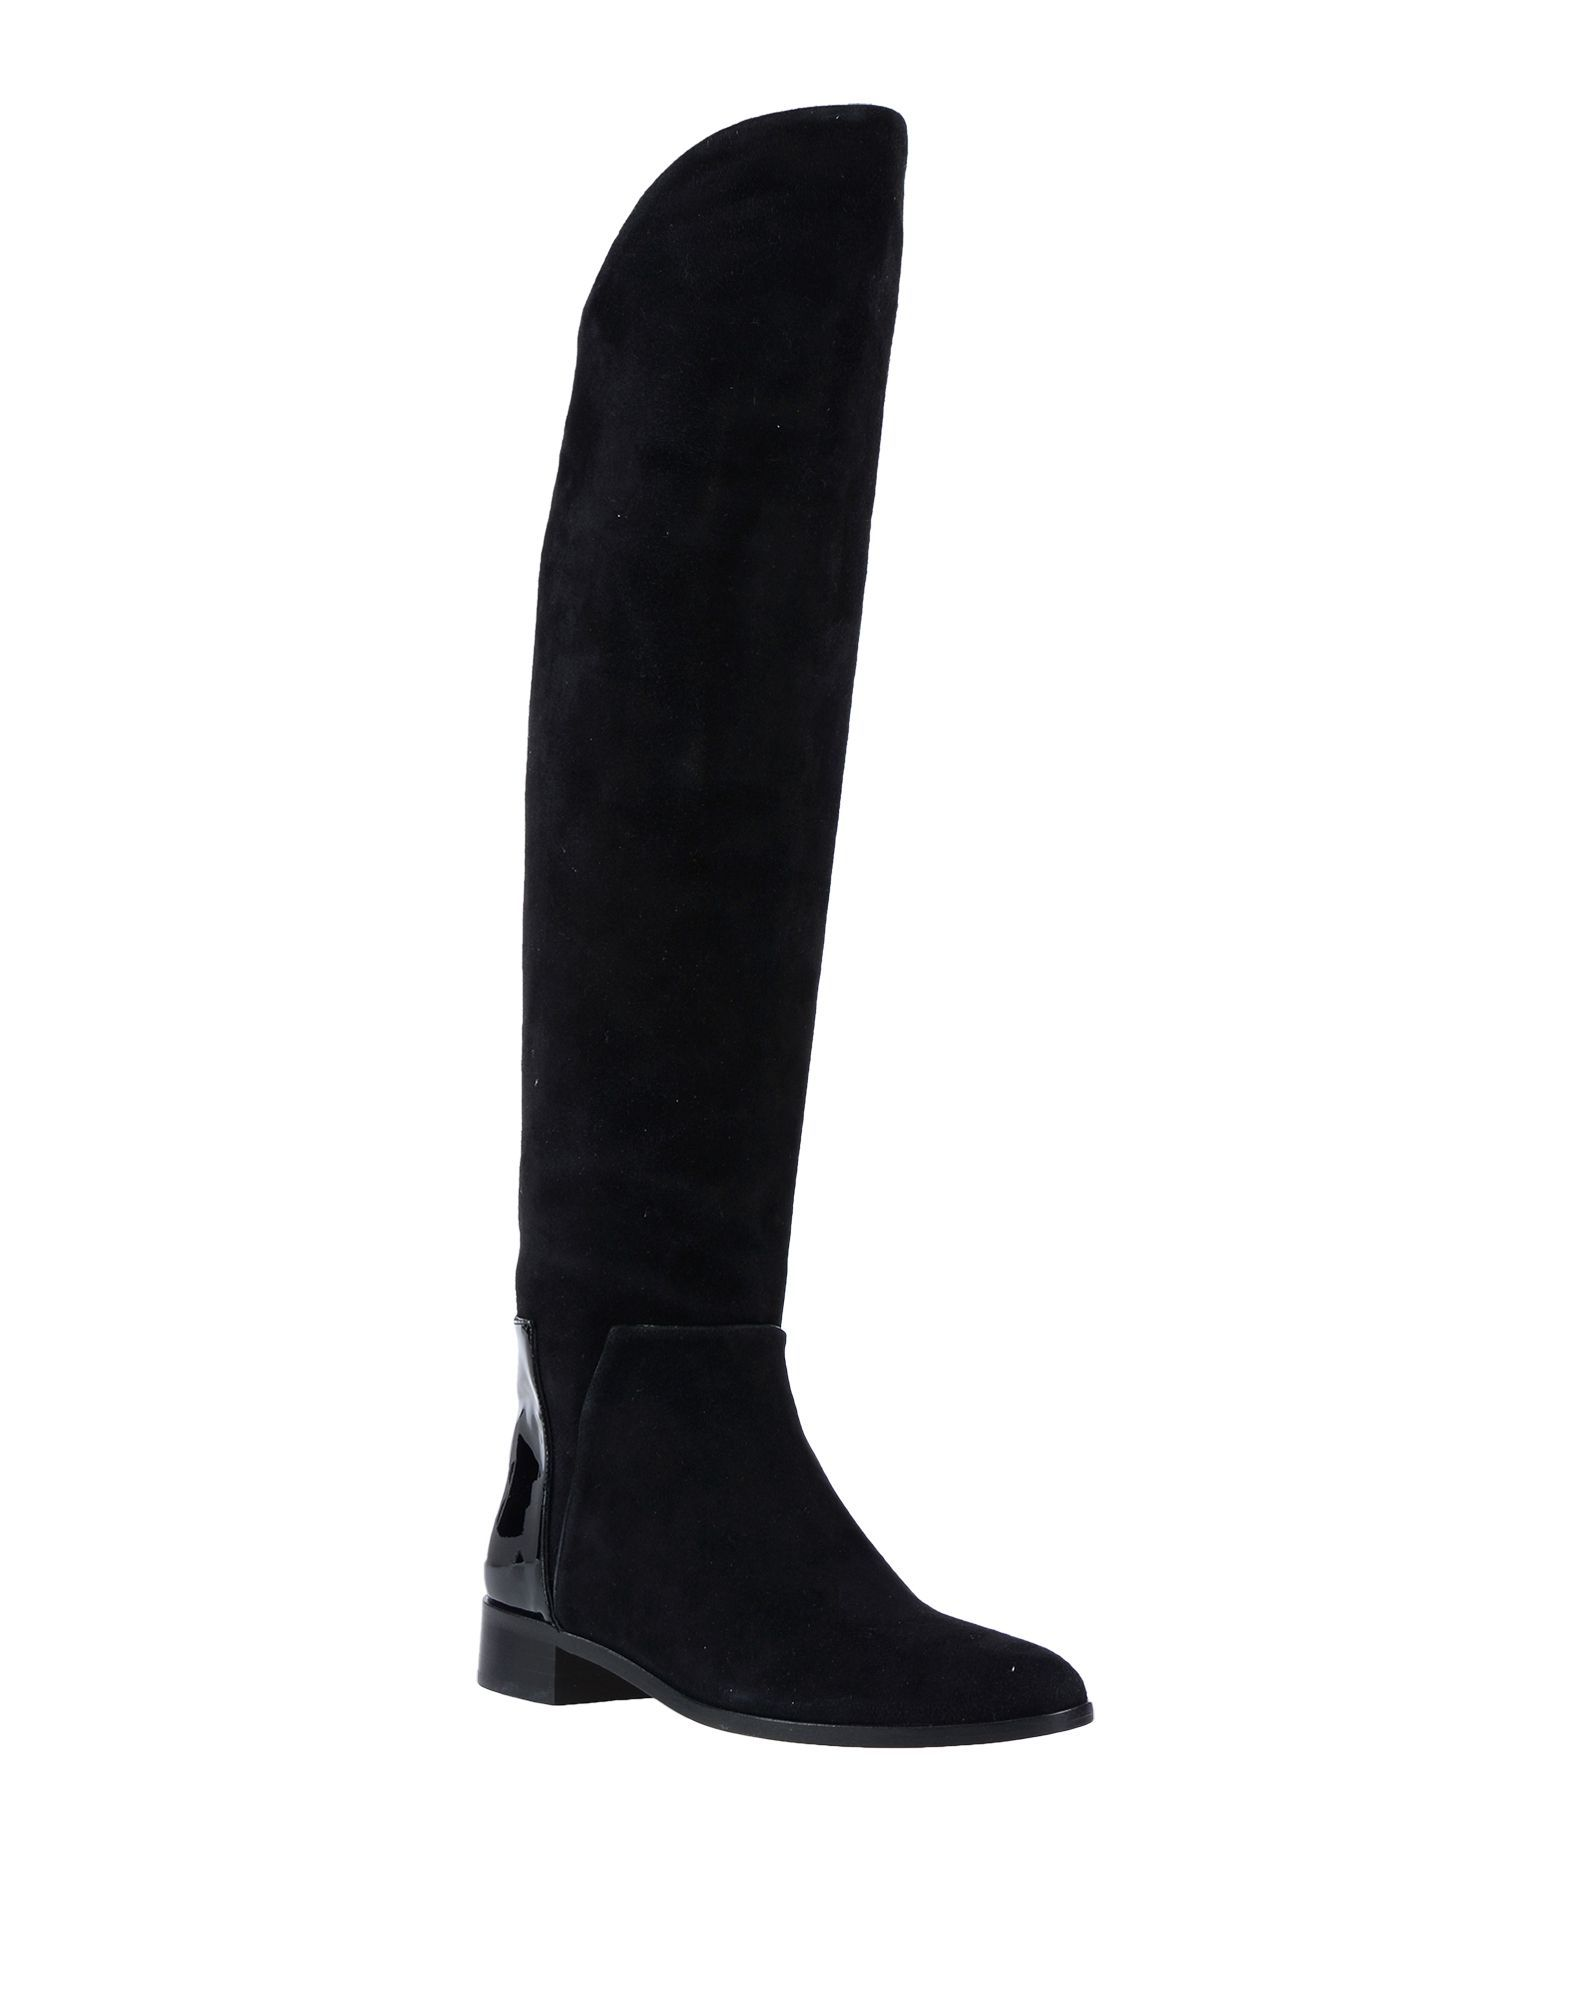 Charlotte Olympia Black Leather Knee High Boots